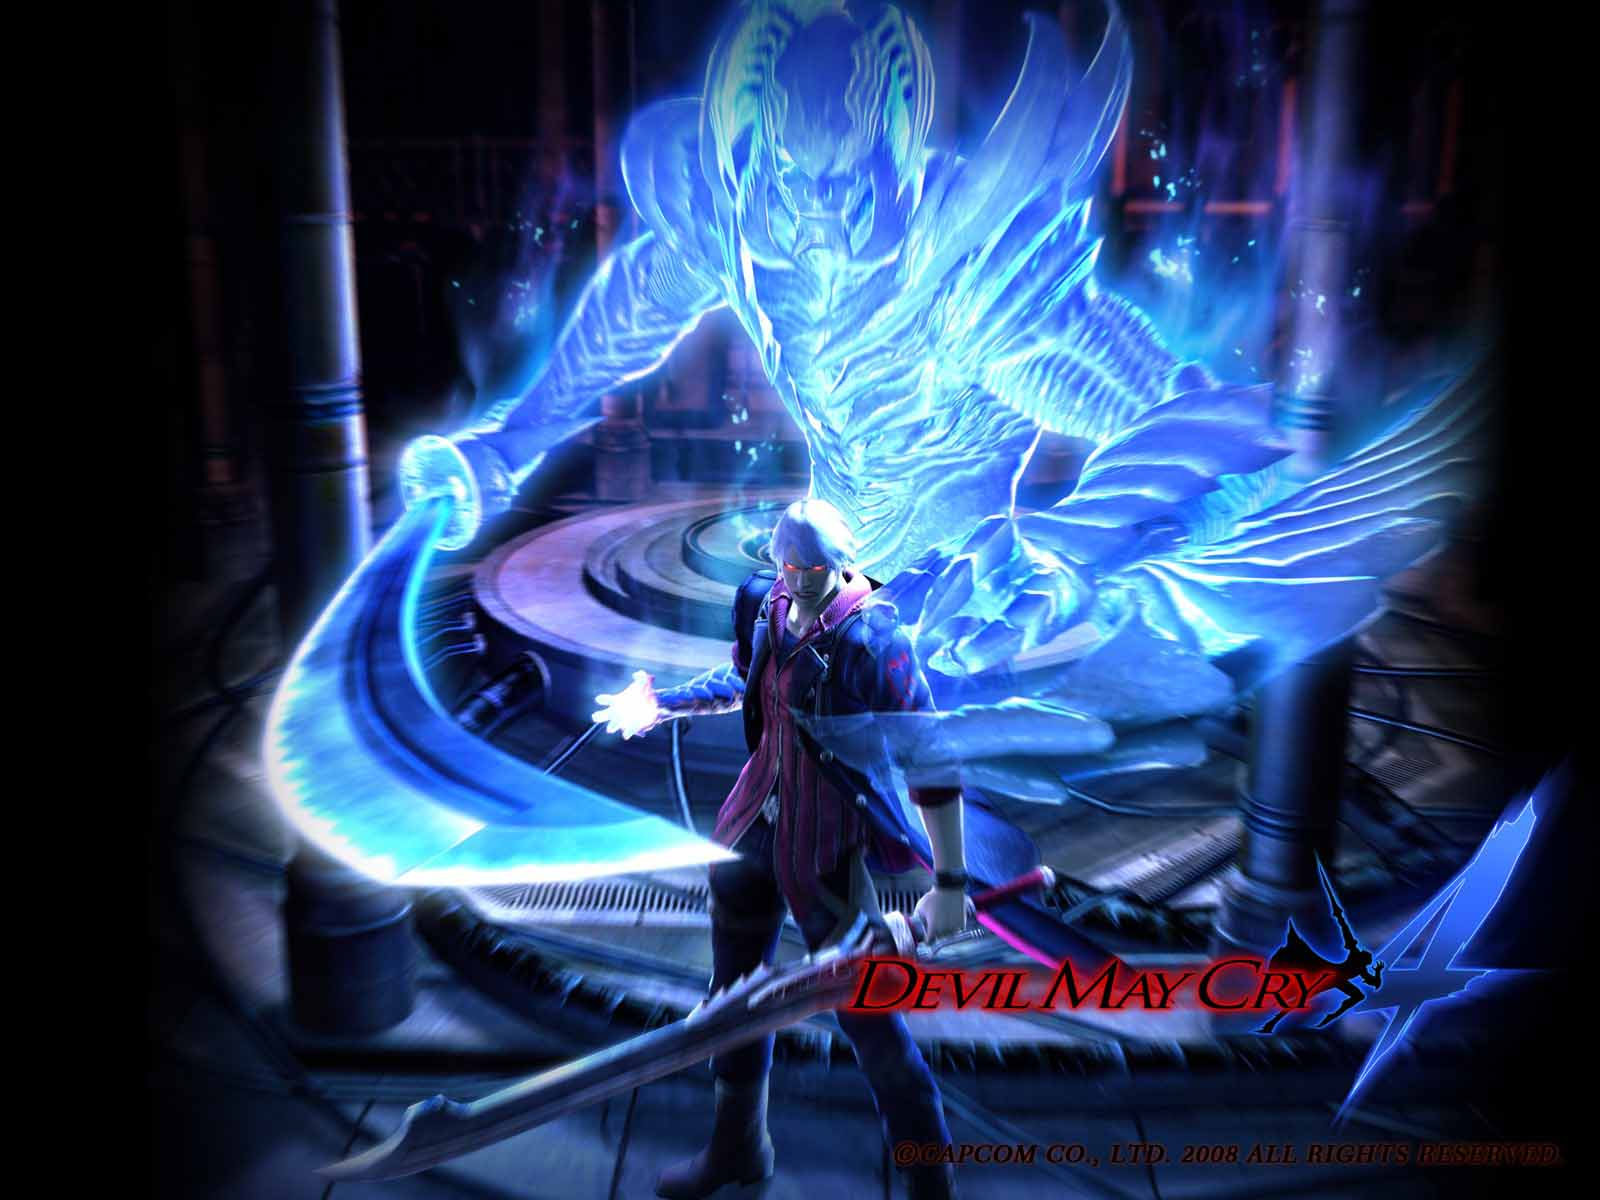 Hq wallpapers devil may cry hd wallpapers - 3d anime wallpaper ...